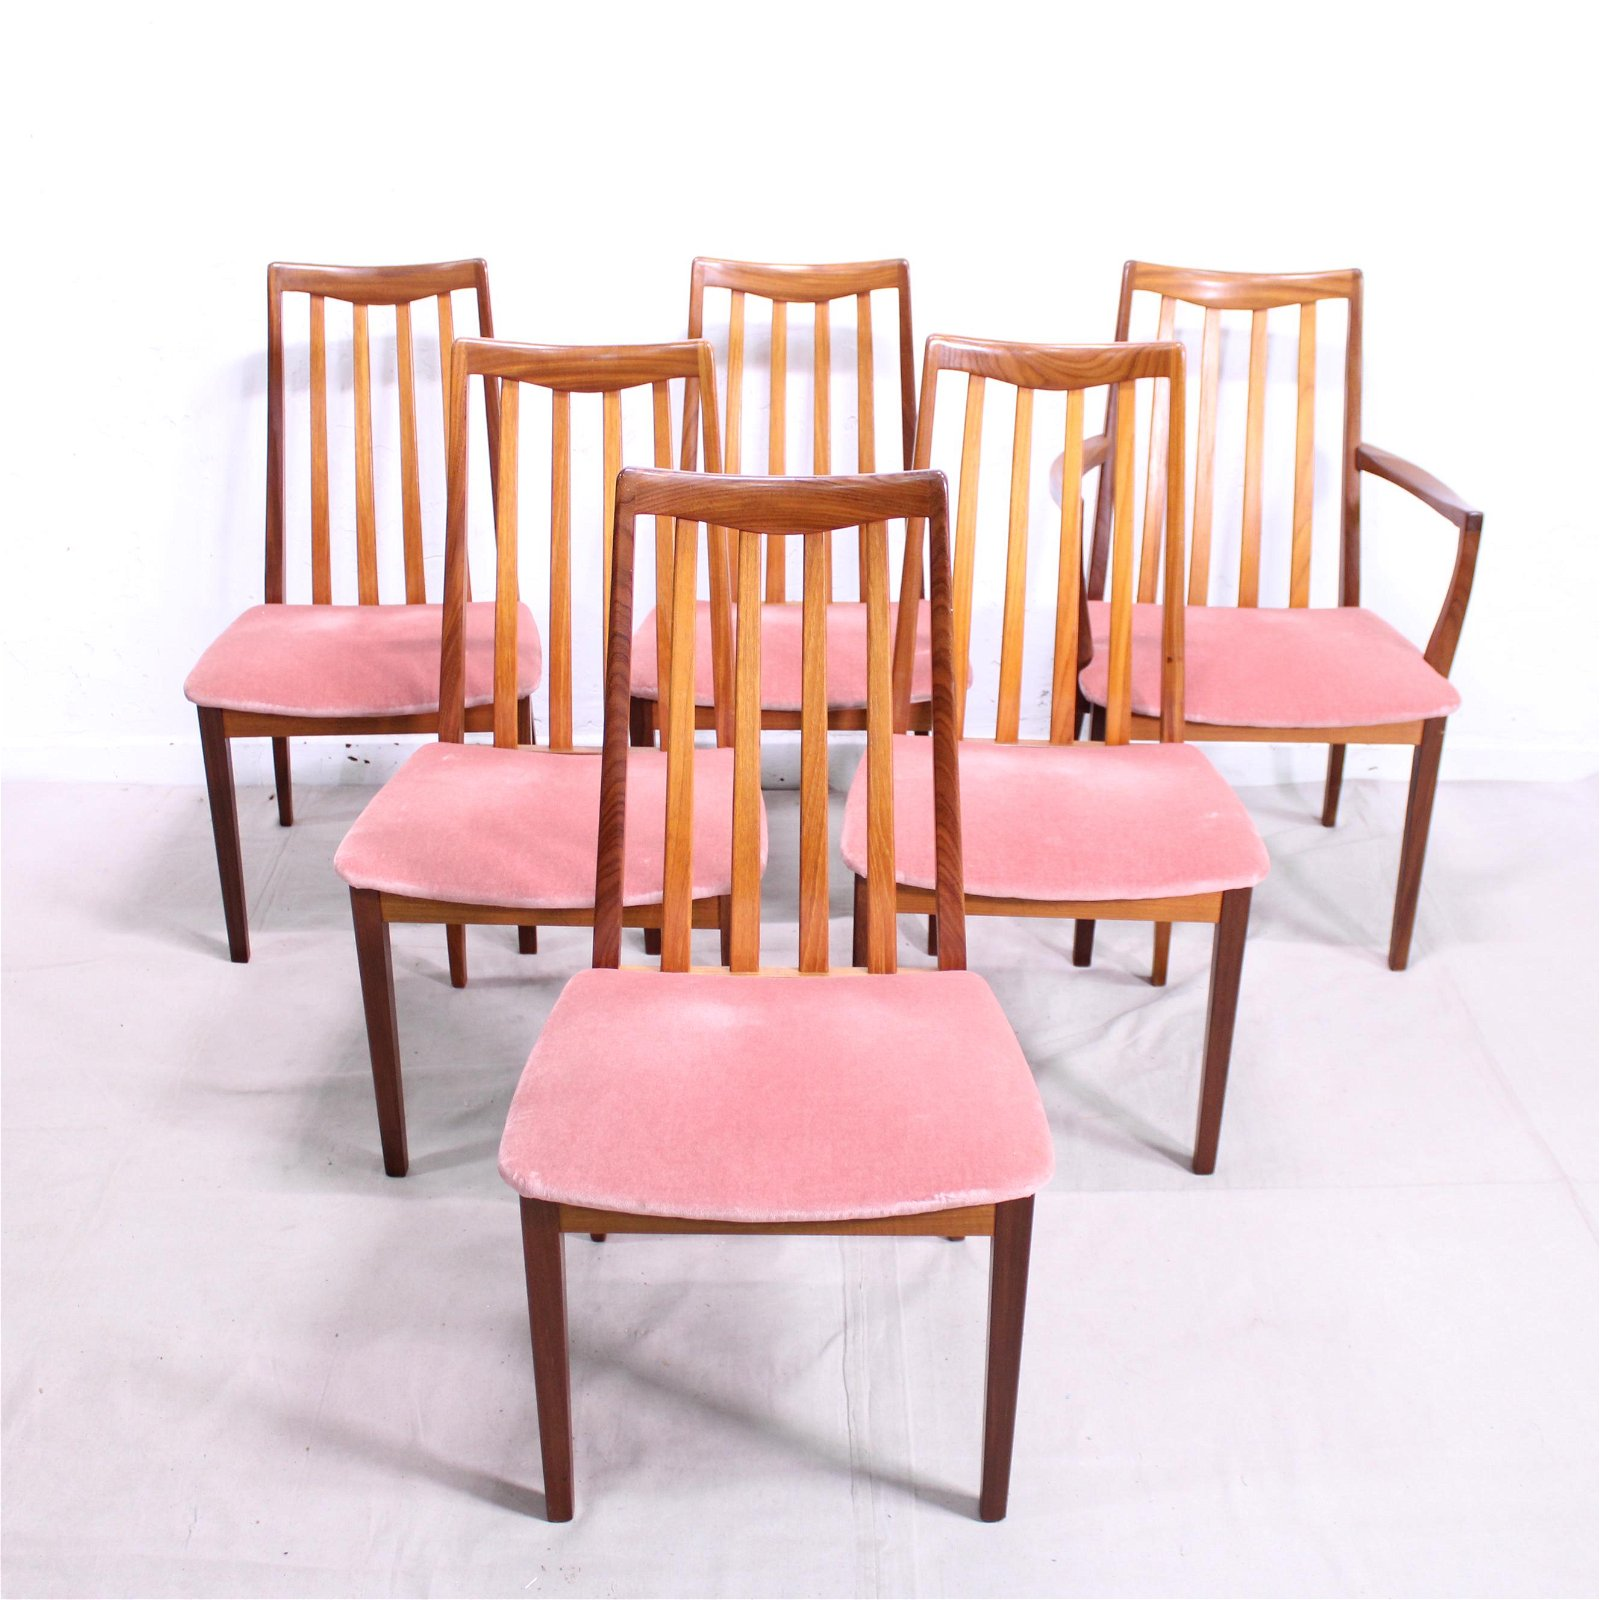 """6 Mid Century Modern """"Fresco"""" Dining Chairs By G-Plan"""